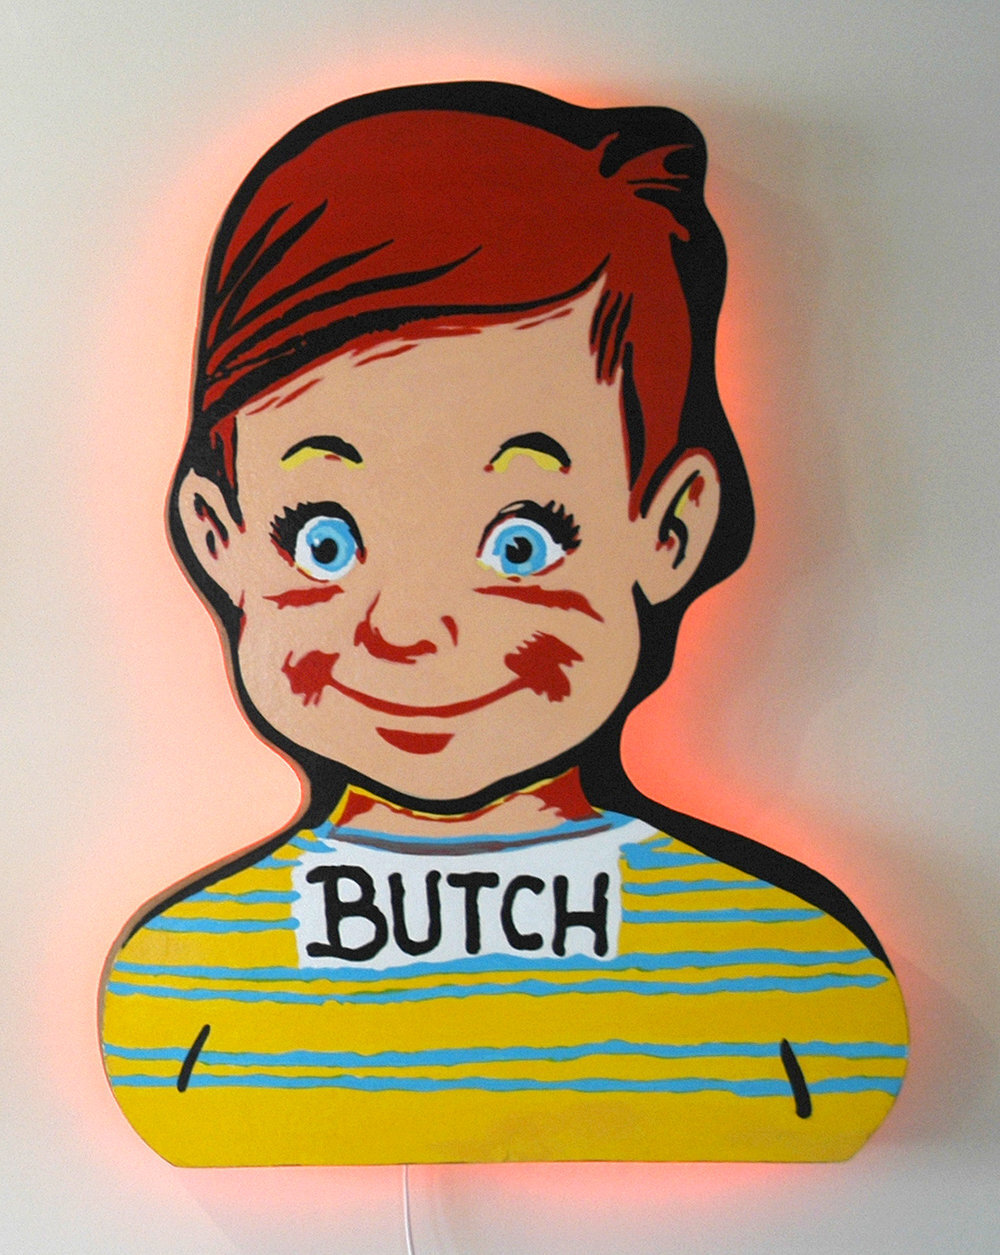 BUTCH (HERE WE ARE)